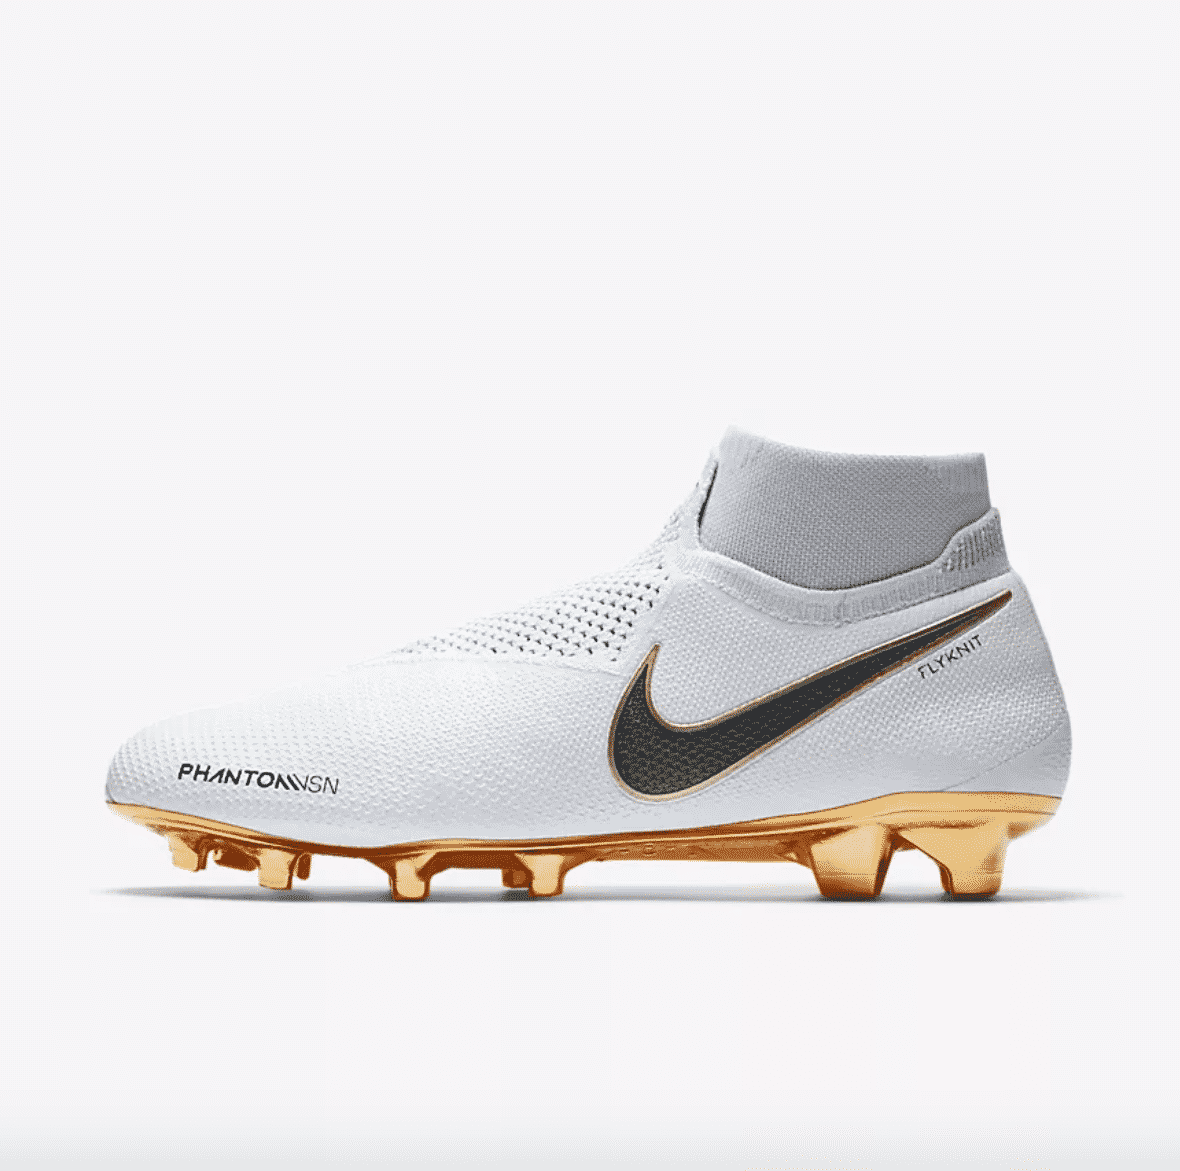 nike-phantom-vision-blanc-or-4